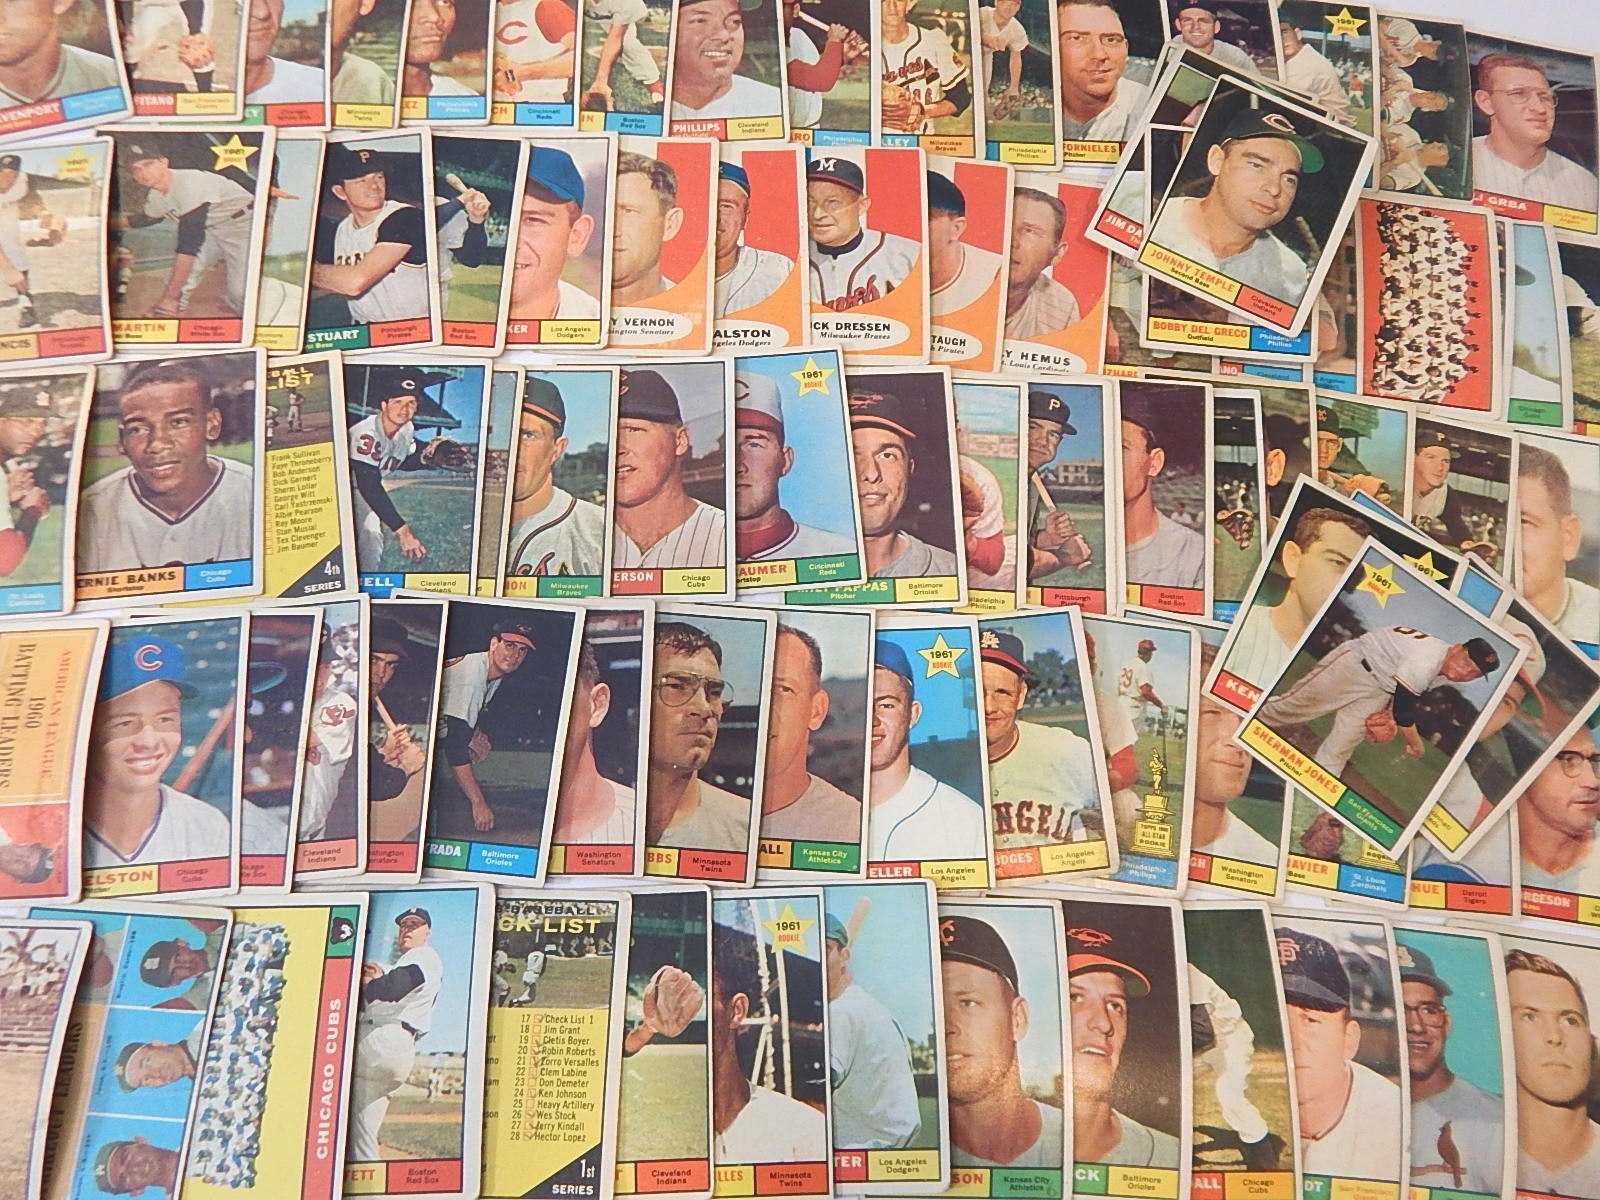 1961 Topps Baseball Card Lot with Ernie Banks, Johnny Temple, Cubs Team Card